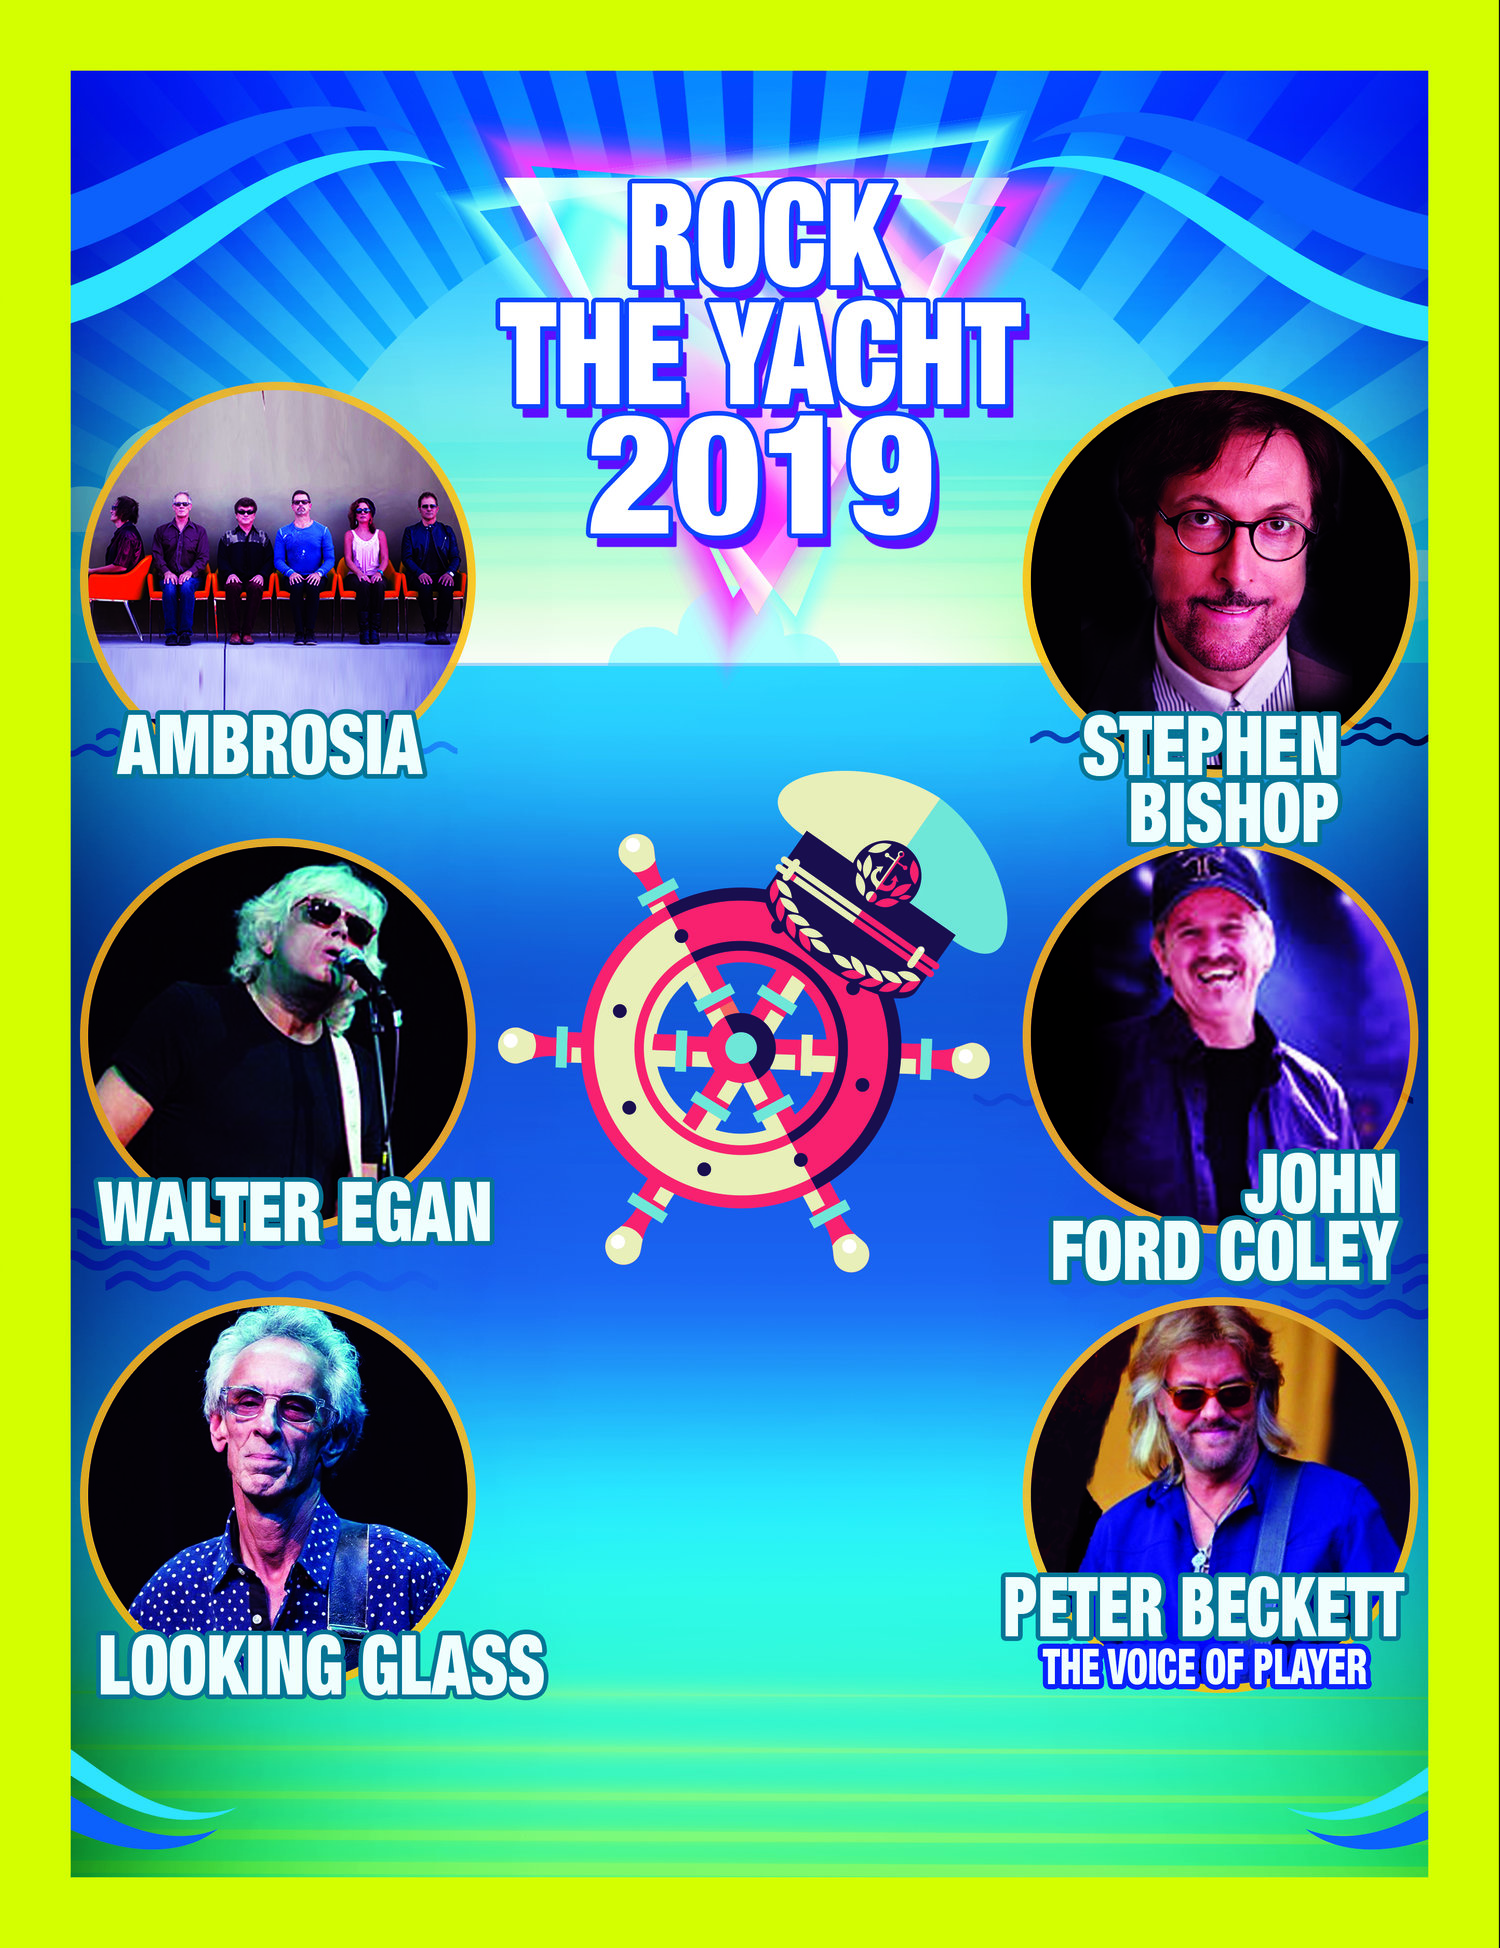 Rock The Yacht — Flower Power Concerts, Inc